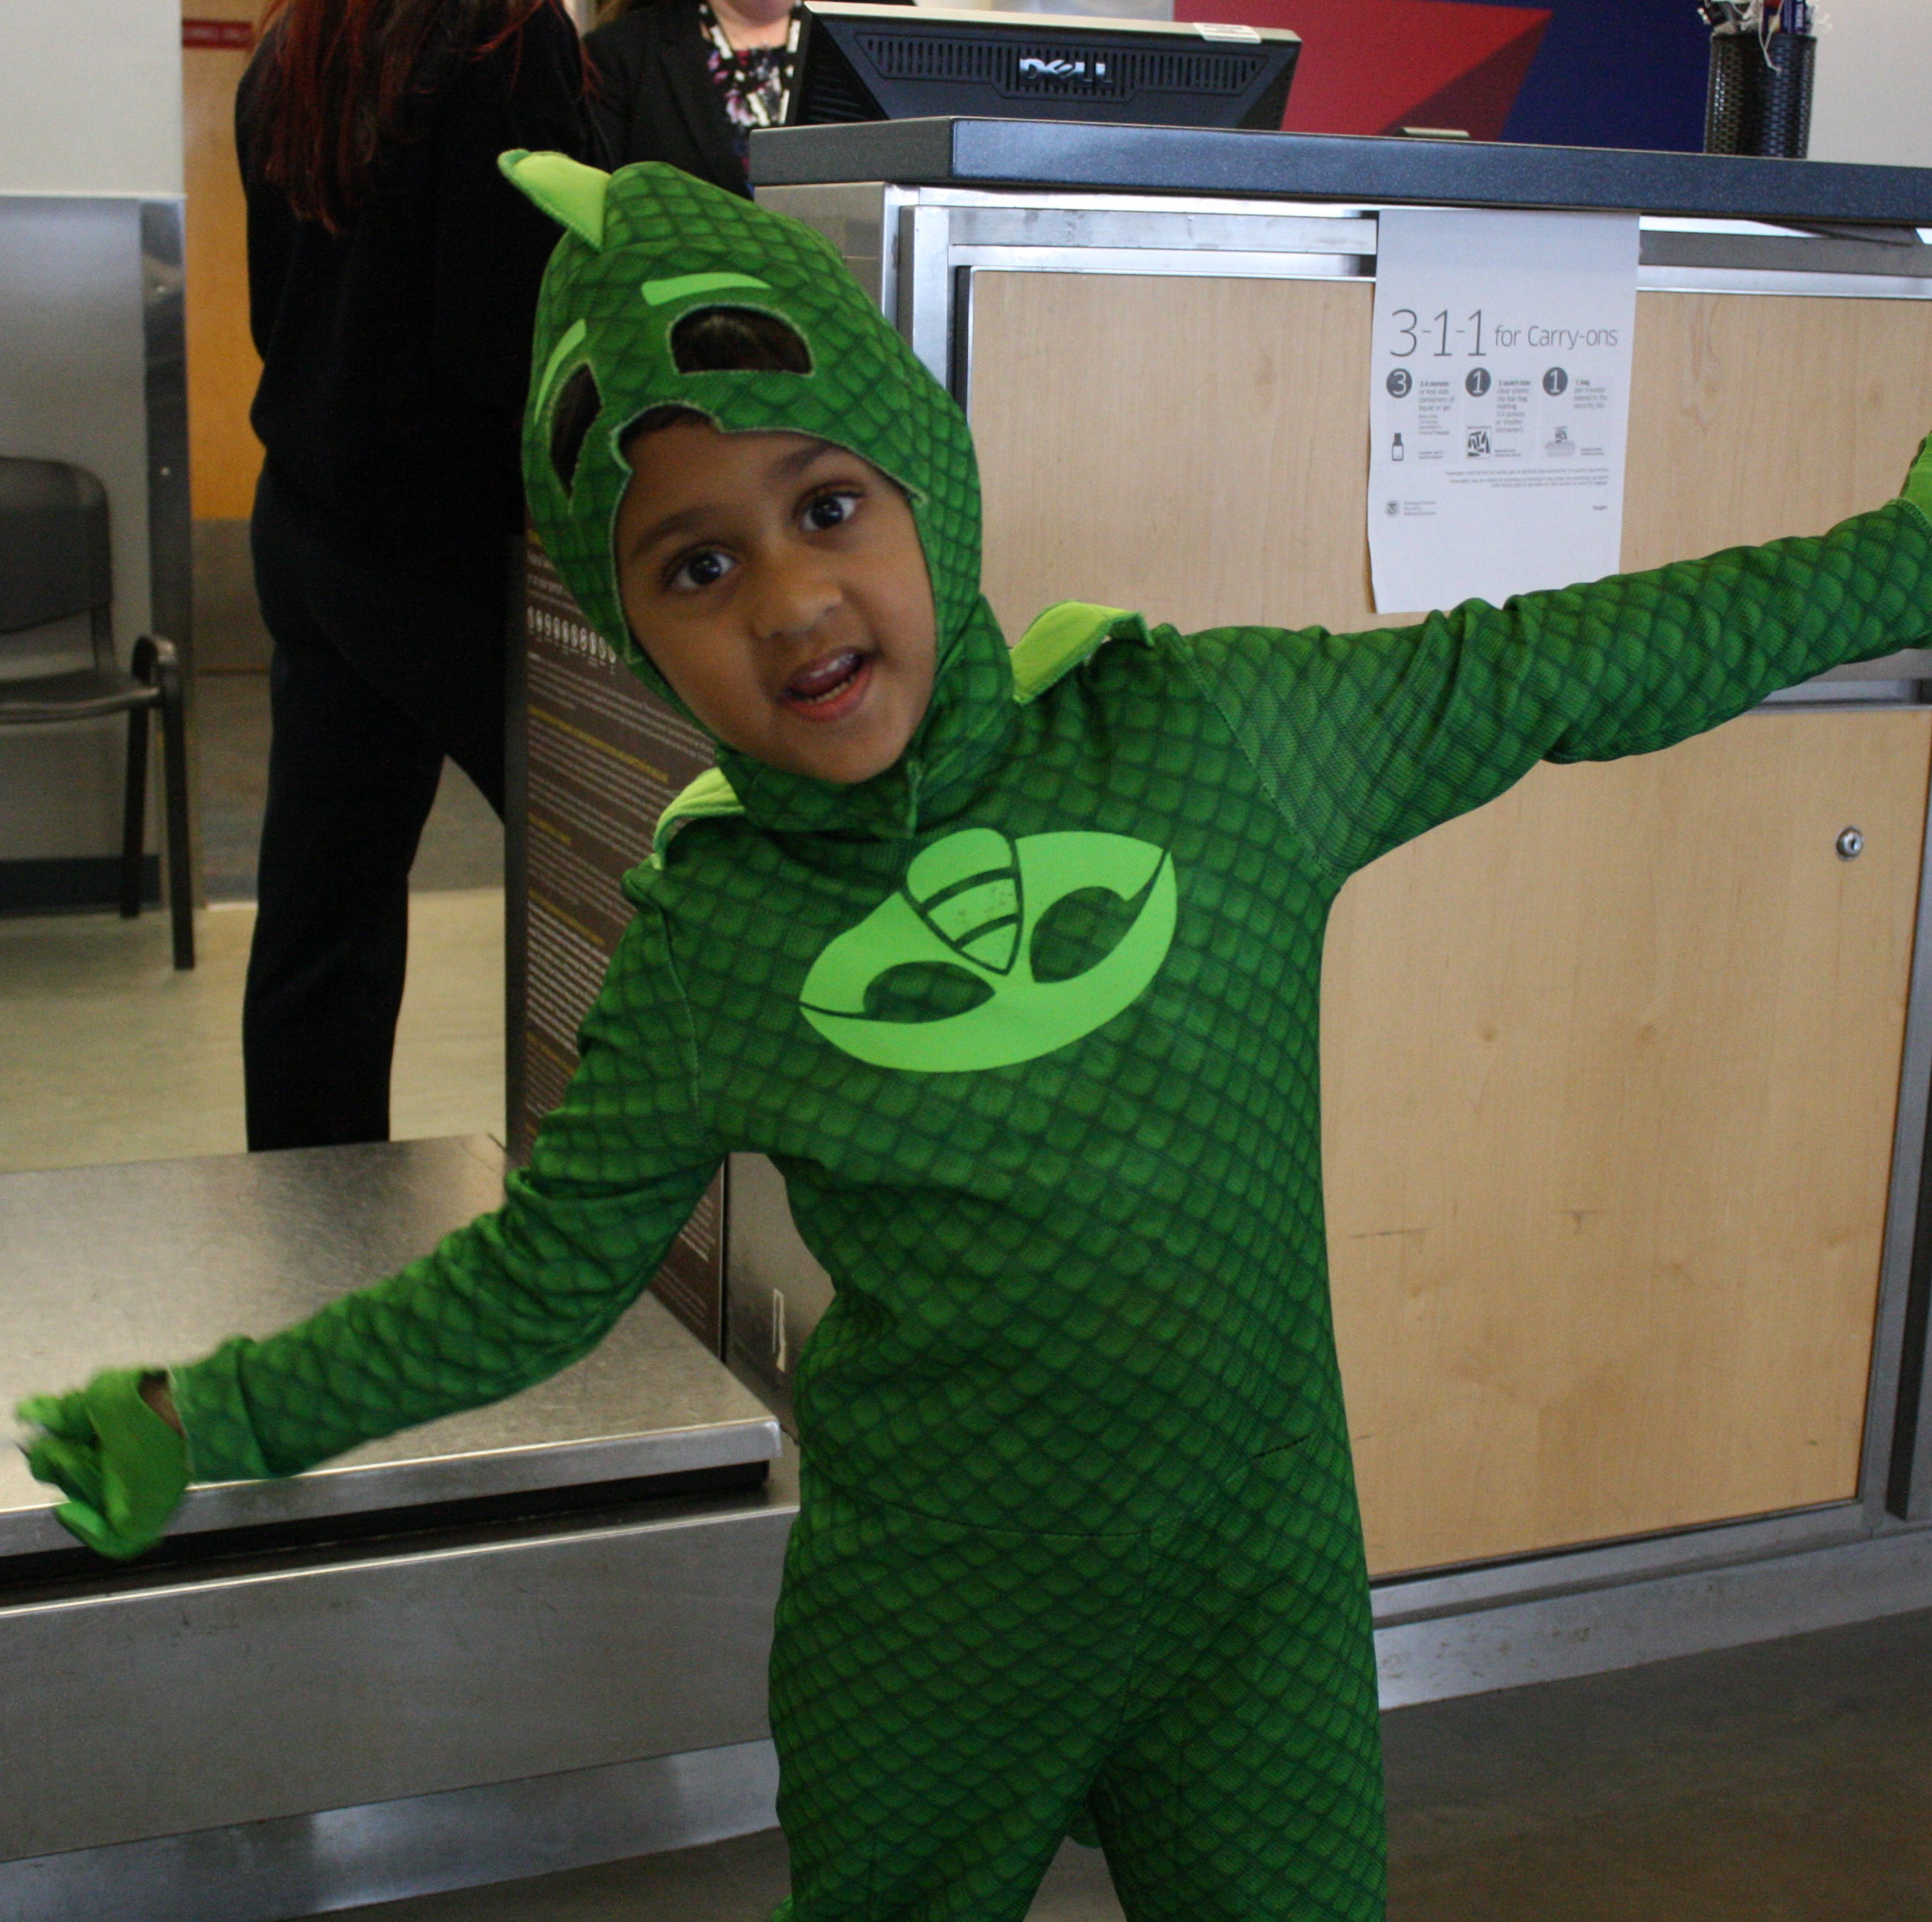 Greater Binghamton Airport hosts trick-or-treaters